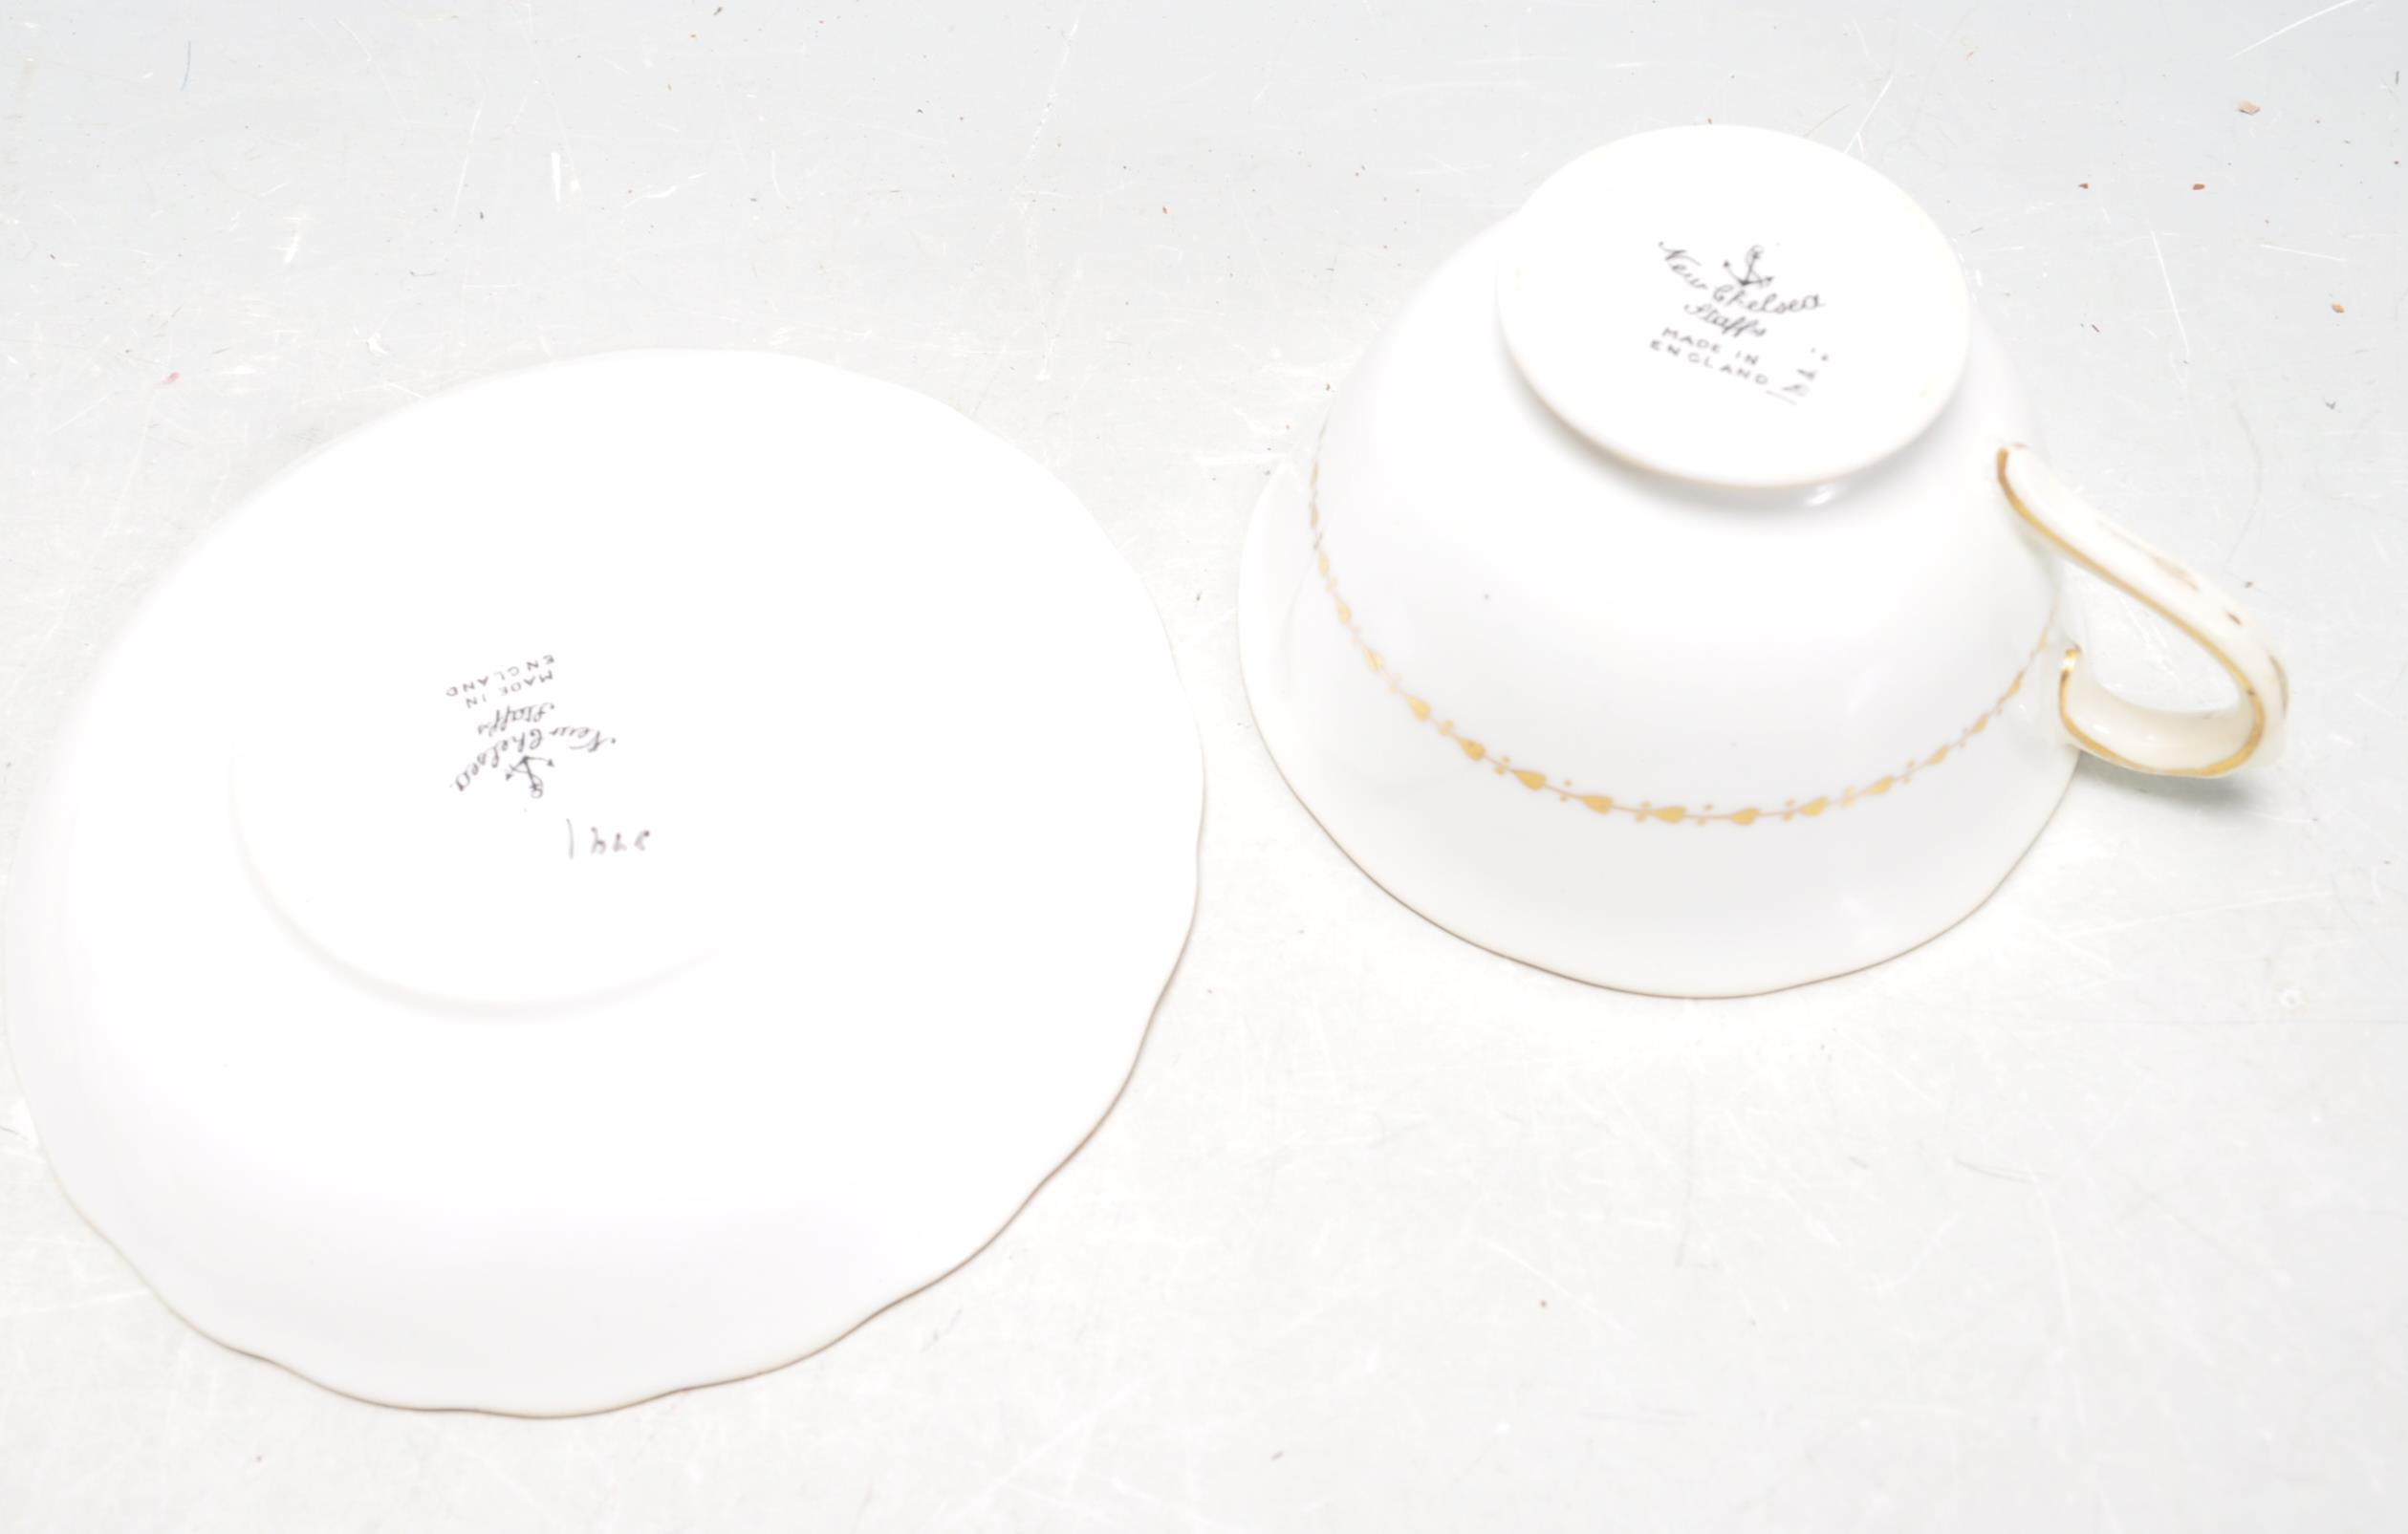 COLLECTION OF NEW CHELSEA STAFFORDSHIRE TEA SERVICE. - Image 4 of 4